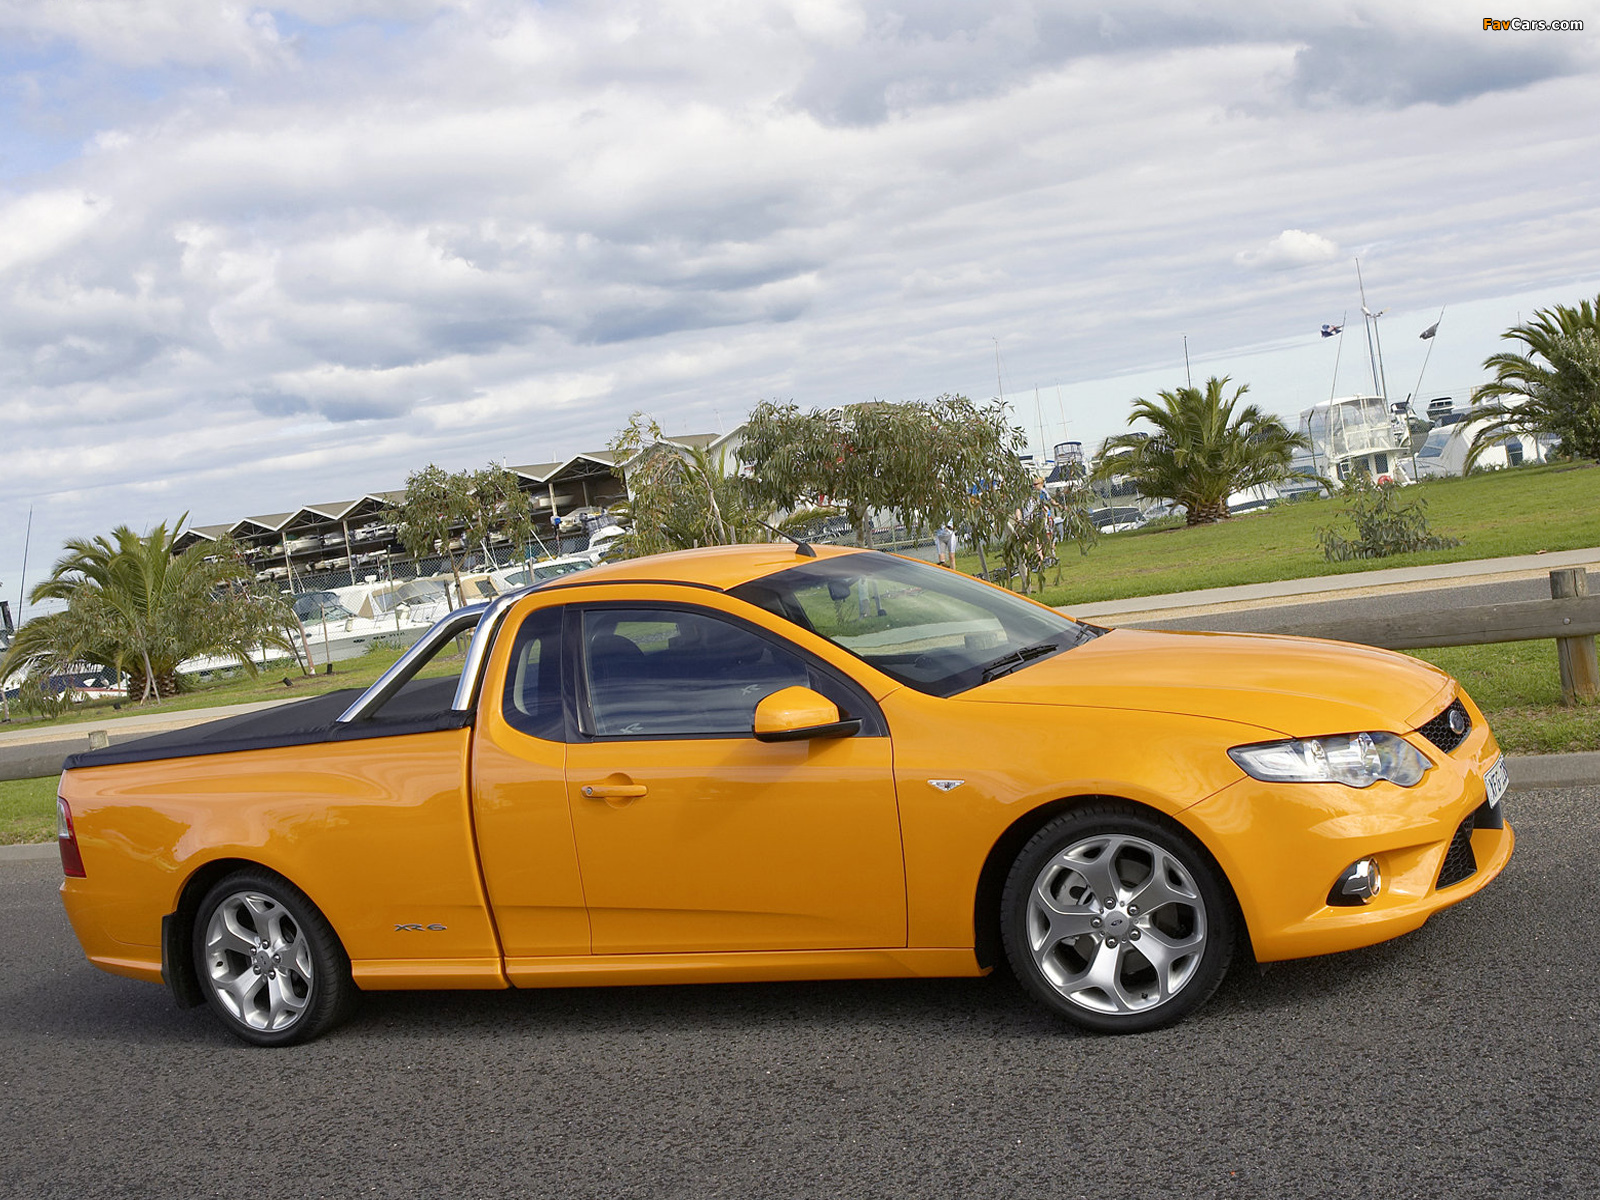 Watch also Wallpaper 0d also Ford ef falcon together with Wallpaper 02 moreover File Queensland Police Service Traffic Branch Falcon XR6 Turbo   Flickr   Highway Patrol Images  1. on ford xr falcon